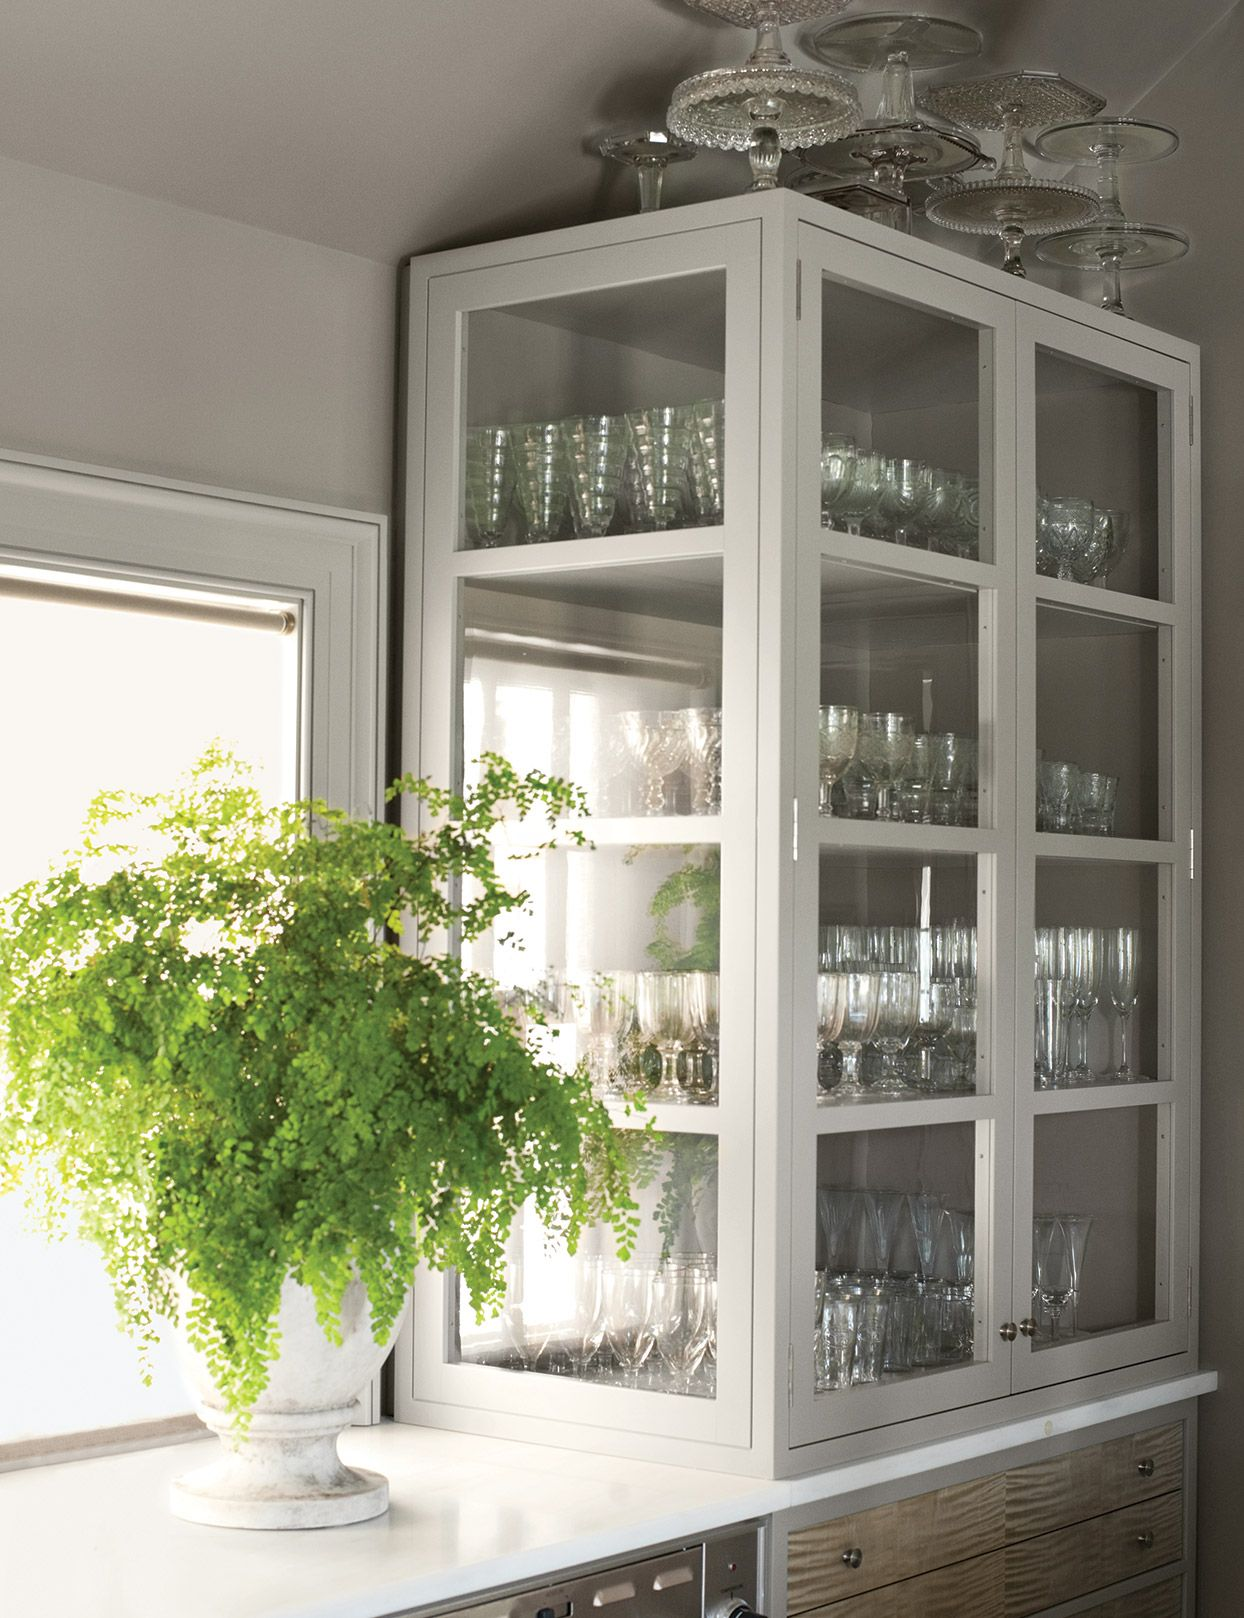 martha s top kitchen organizing tips in 2020 glass kitchen cabinet doors glass kitchen on kitchen cabinets with glass doors on top id=66126